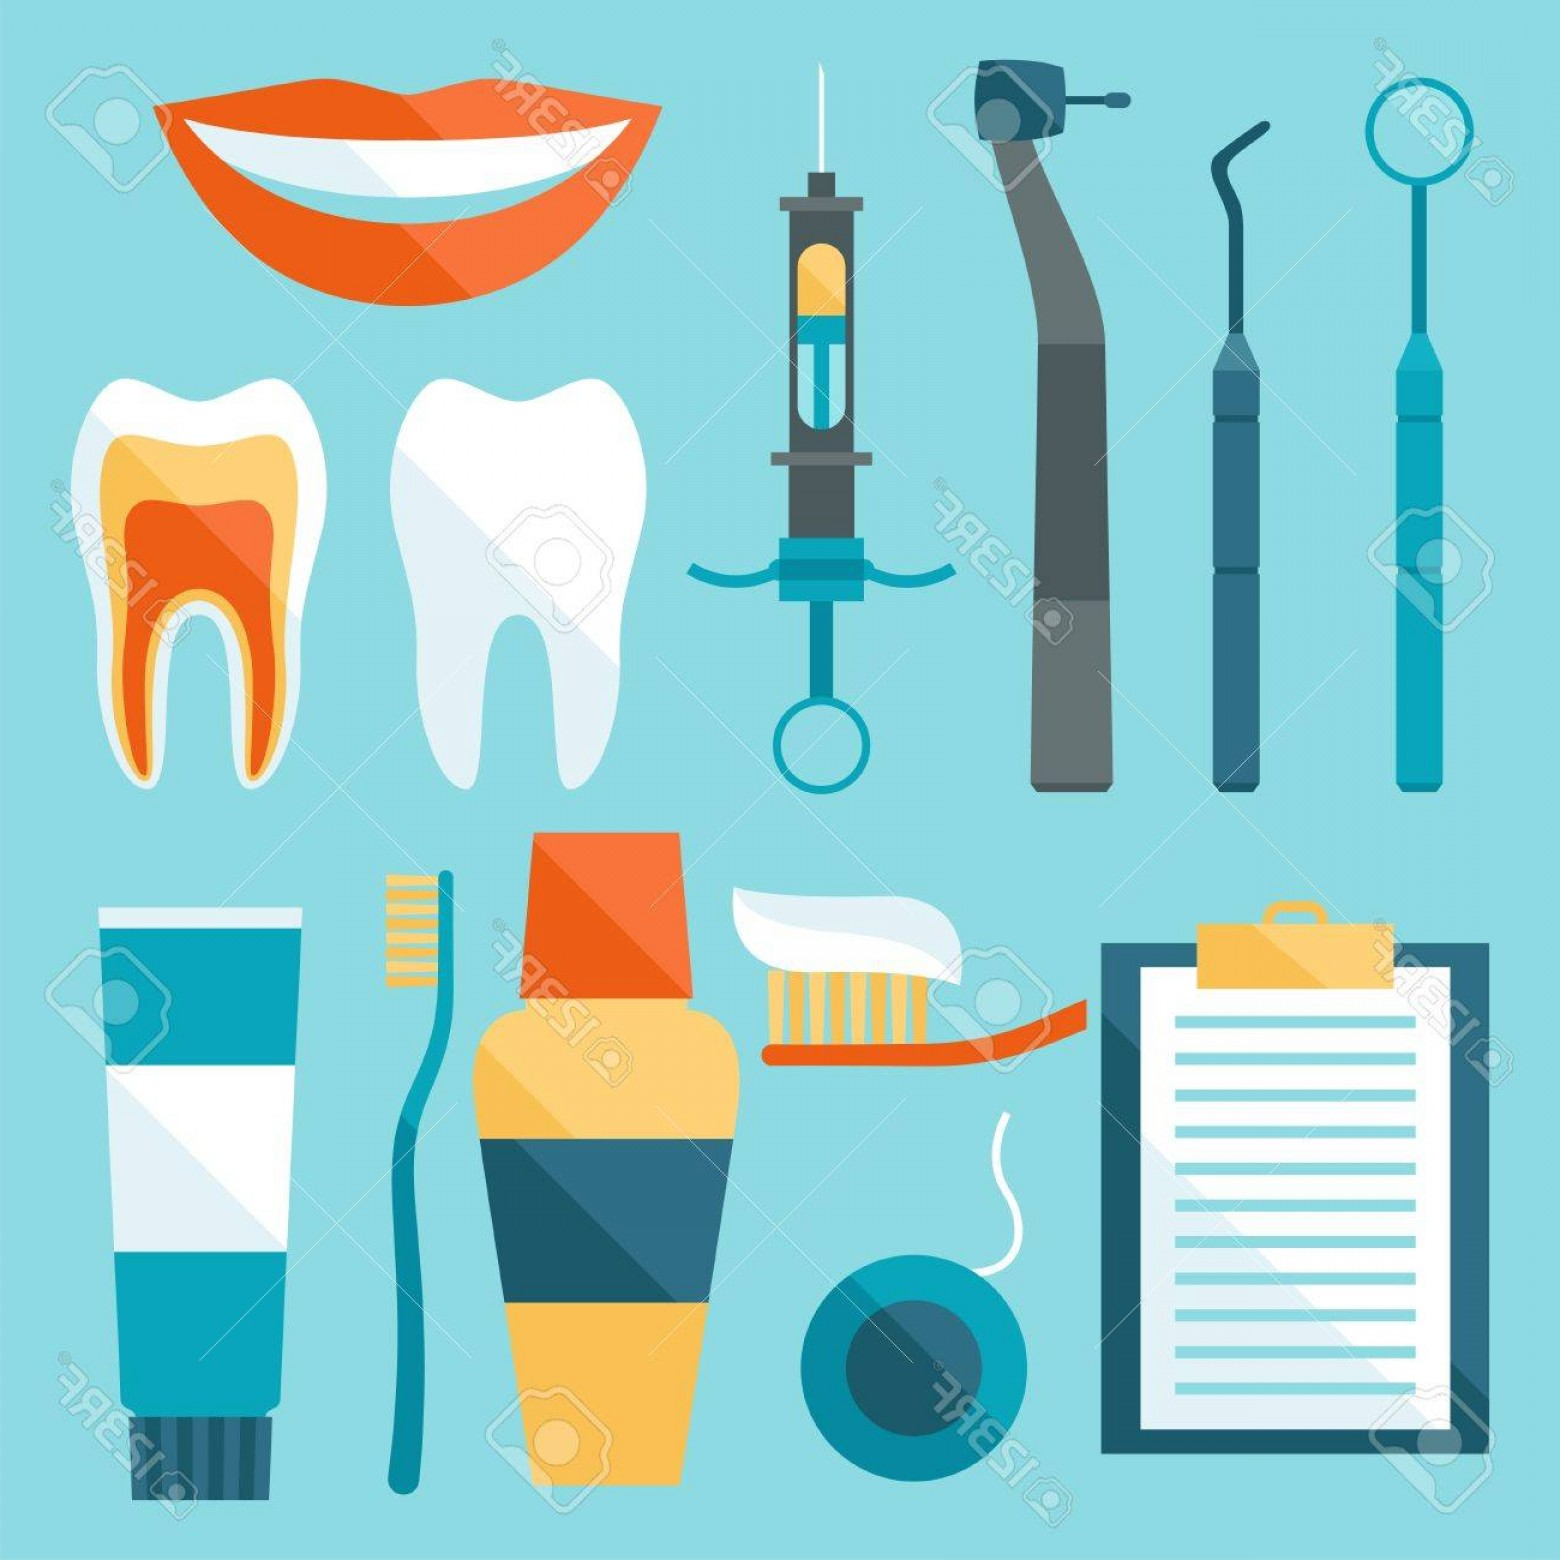 Vector Dental Equipment: Photostock Vector Medical Dental Equipment Icons Set In Flat Style